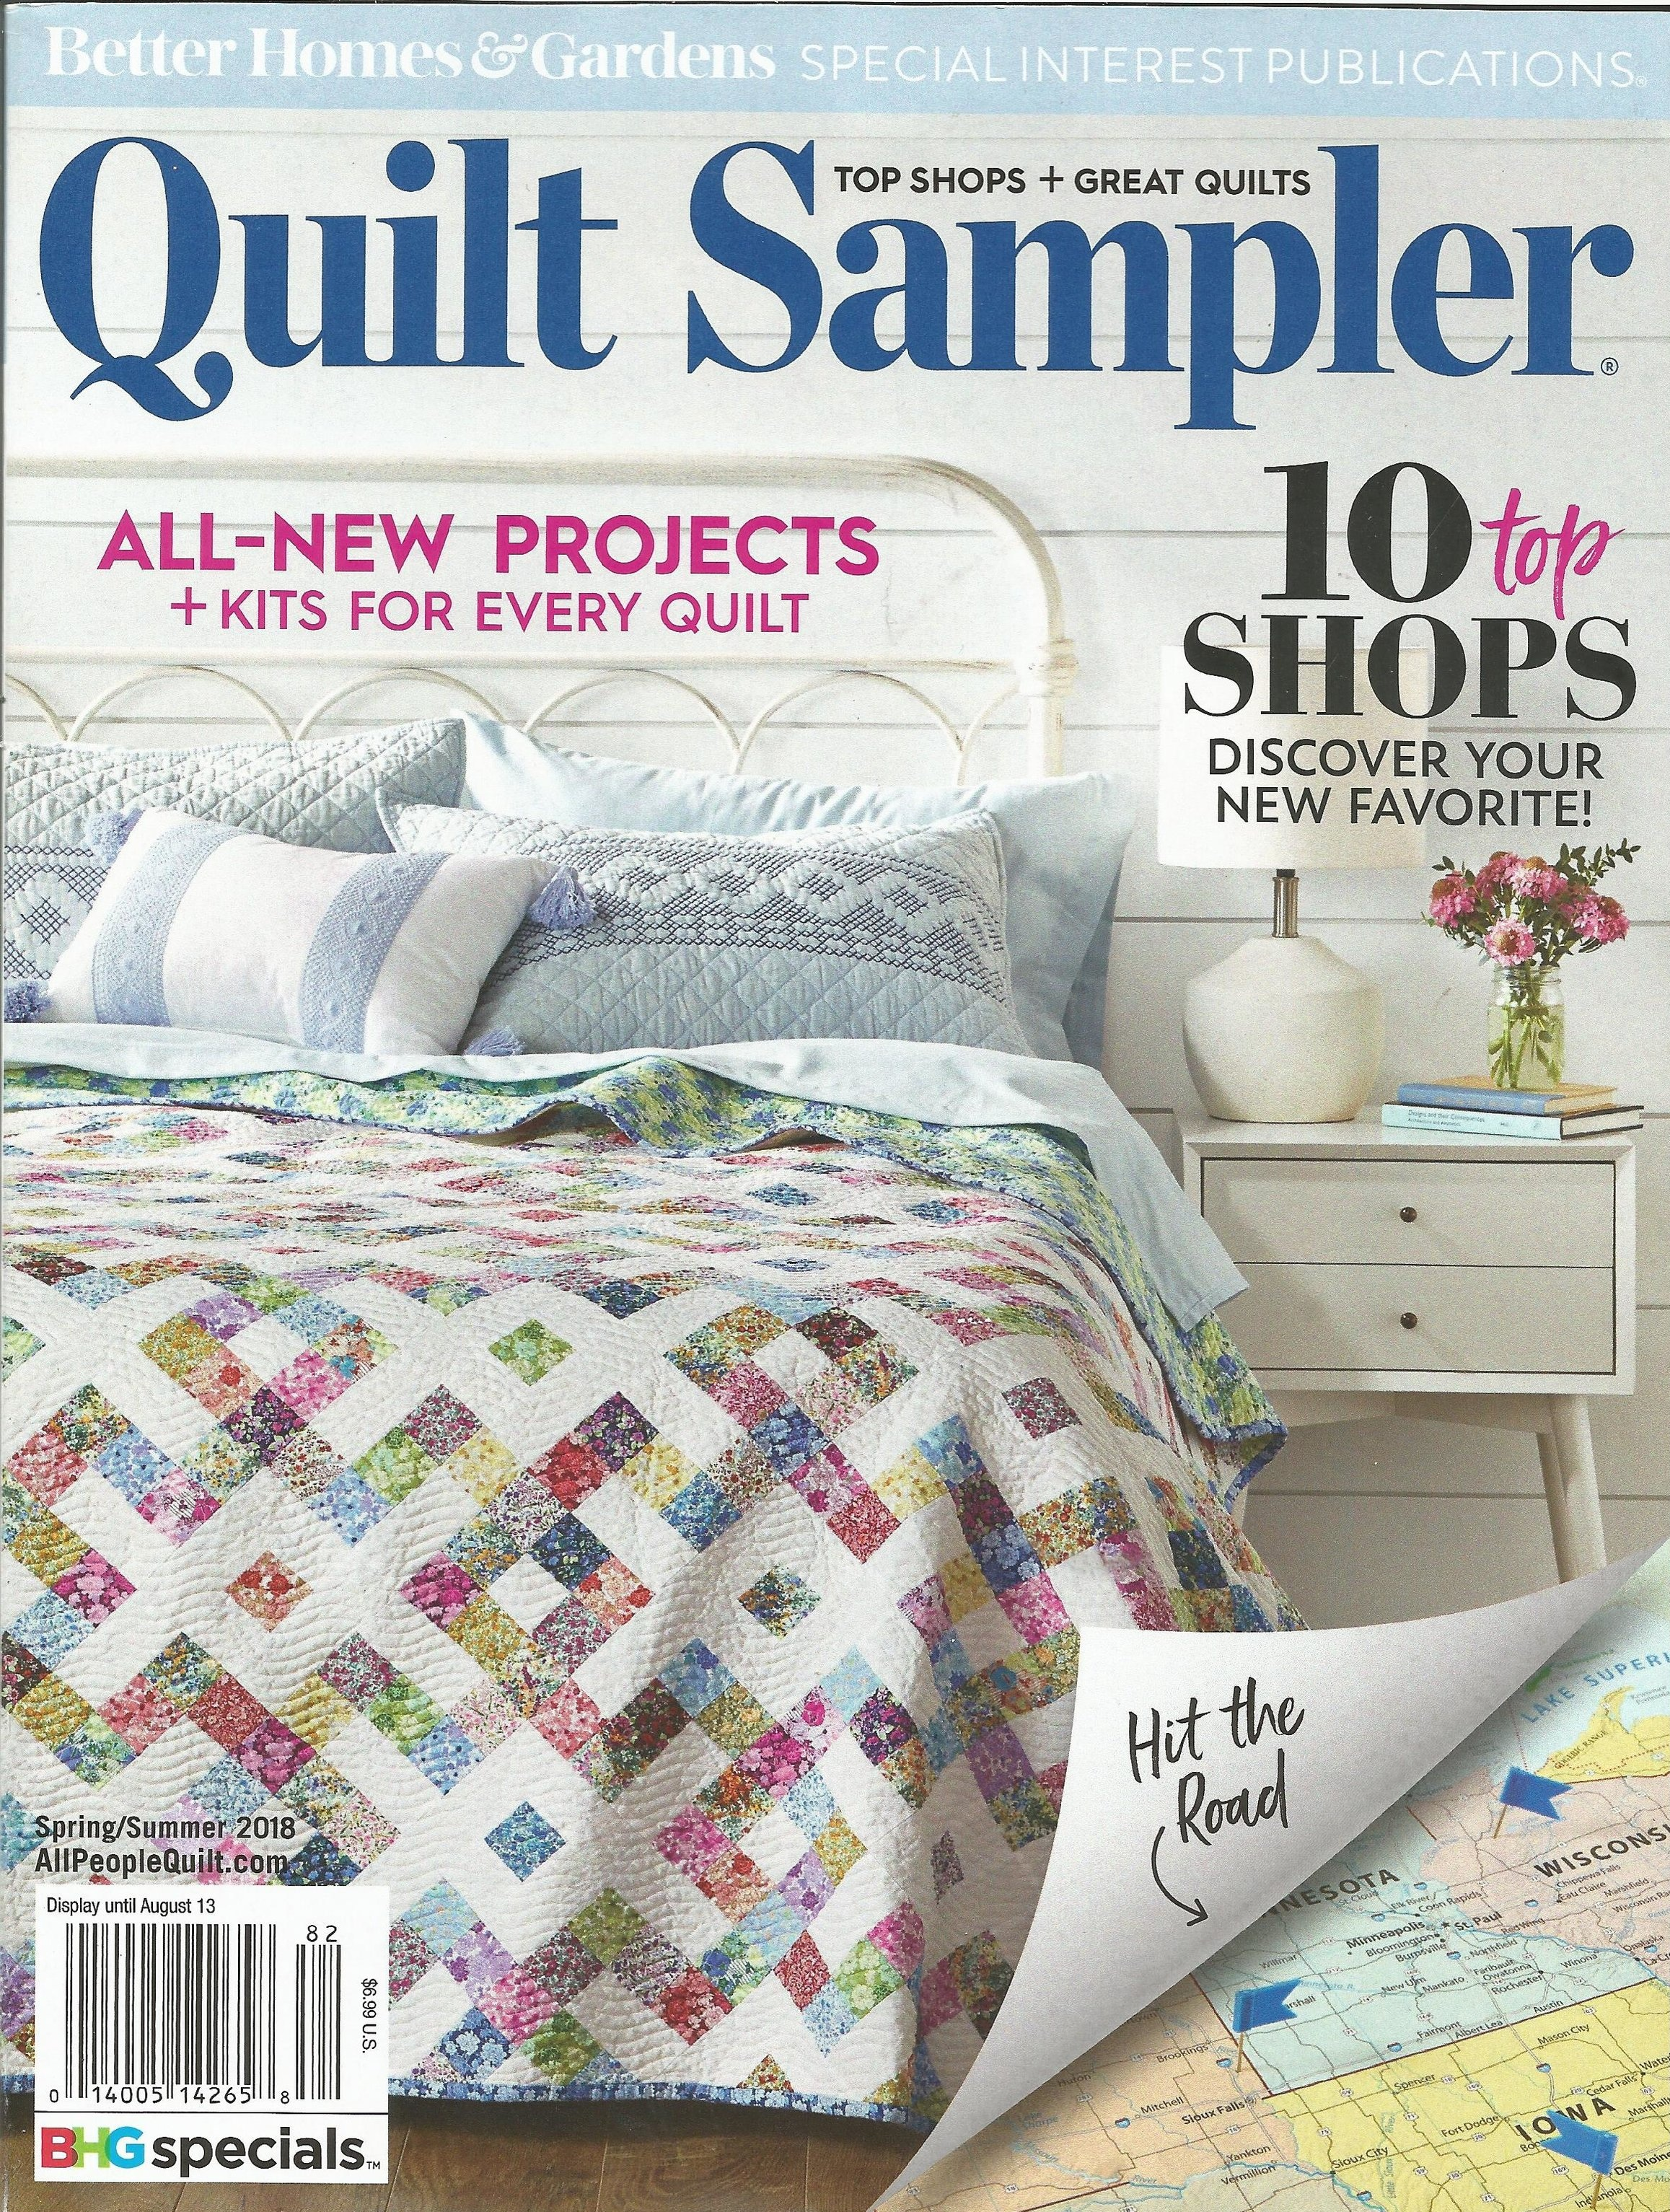 ARTISTIC ARTIFACTS FEATURED    QUILT SAMPLER MAGAZINE NAMED ONE OF THE TOP TEN SHOPS!!!!!!    READ CONTENT OF ARTICLE BELOW